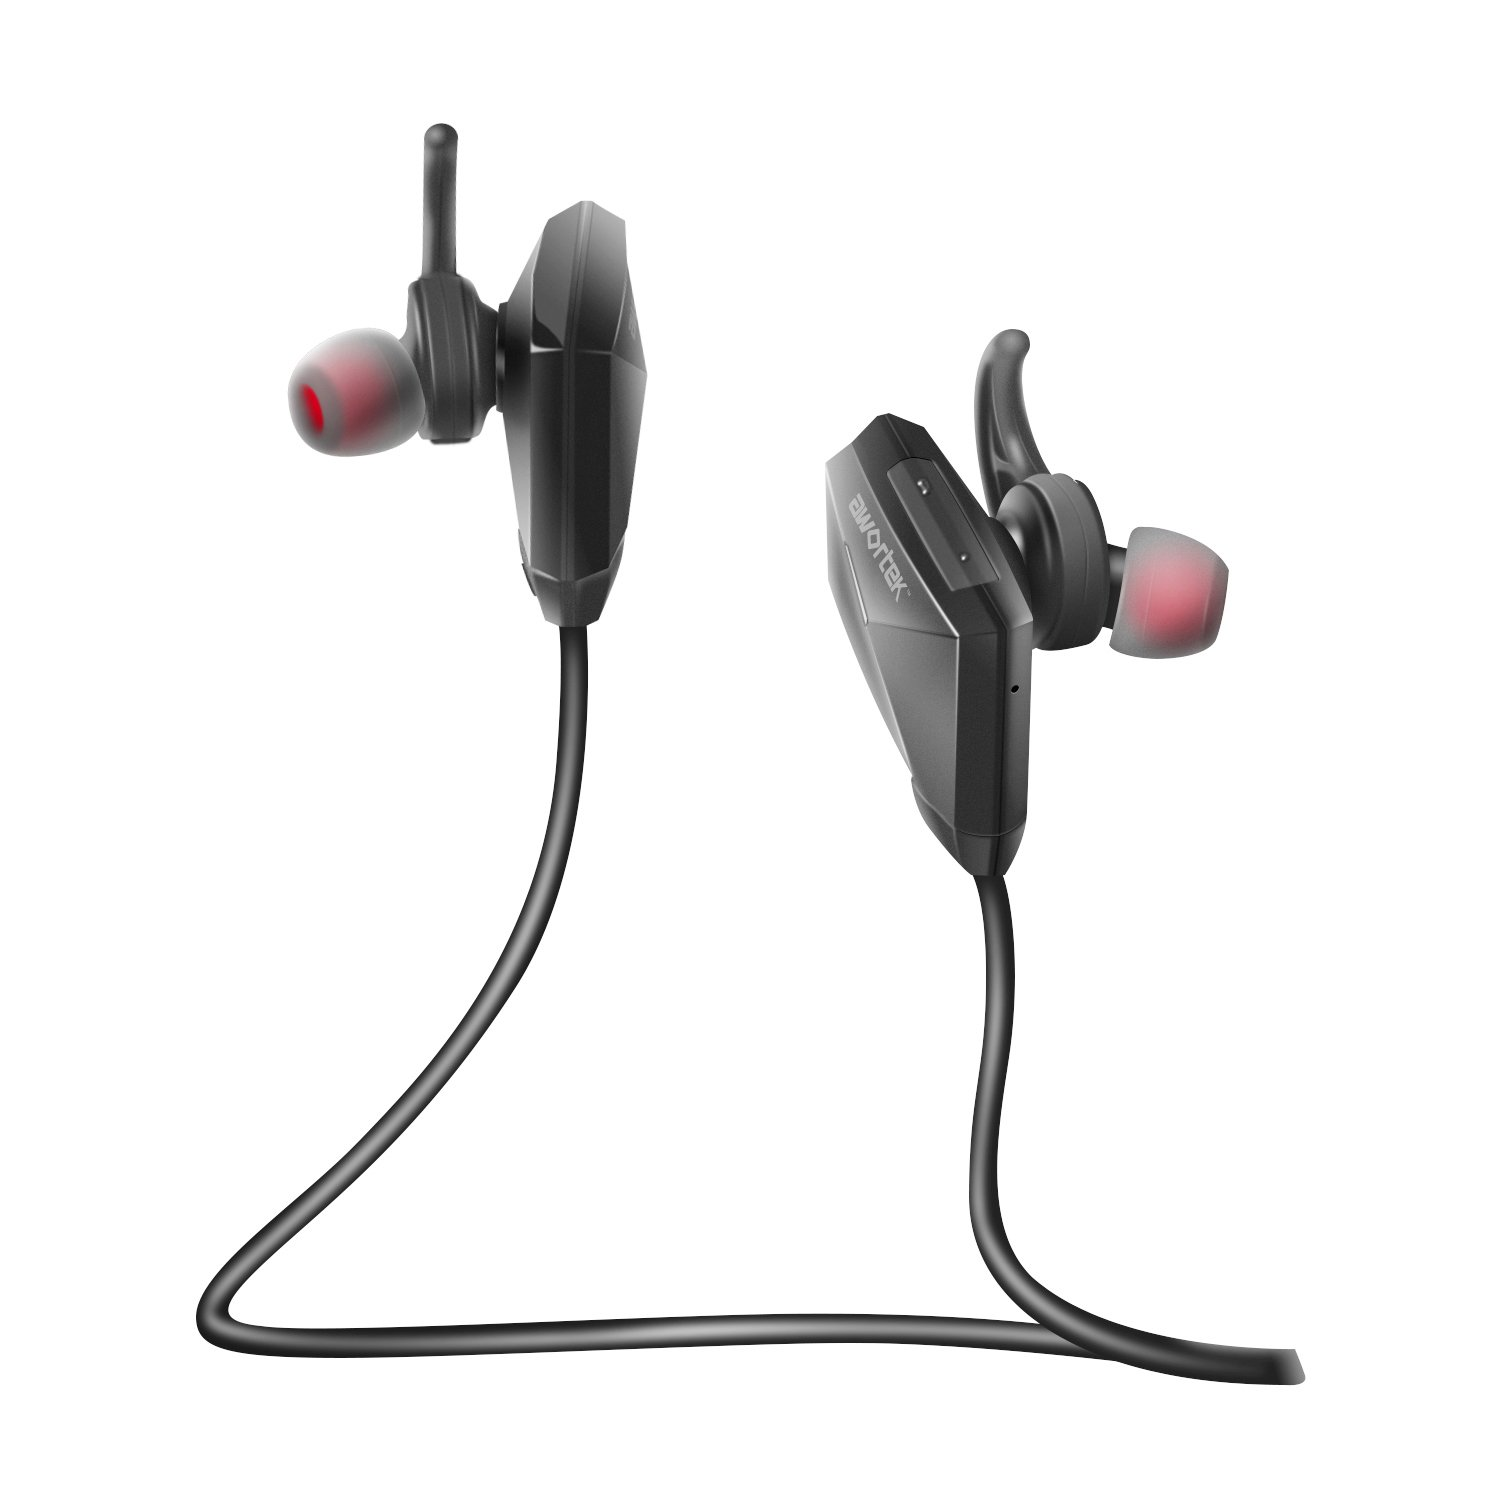 Awortek Bluetooth Headphones 4.1 Wireless Lightweight Earbuds Stereo Sports Sweatproof Bluetooth Earphones with Built-in Mic 6 Hours Working Time for Running, Cycling, Workout